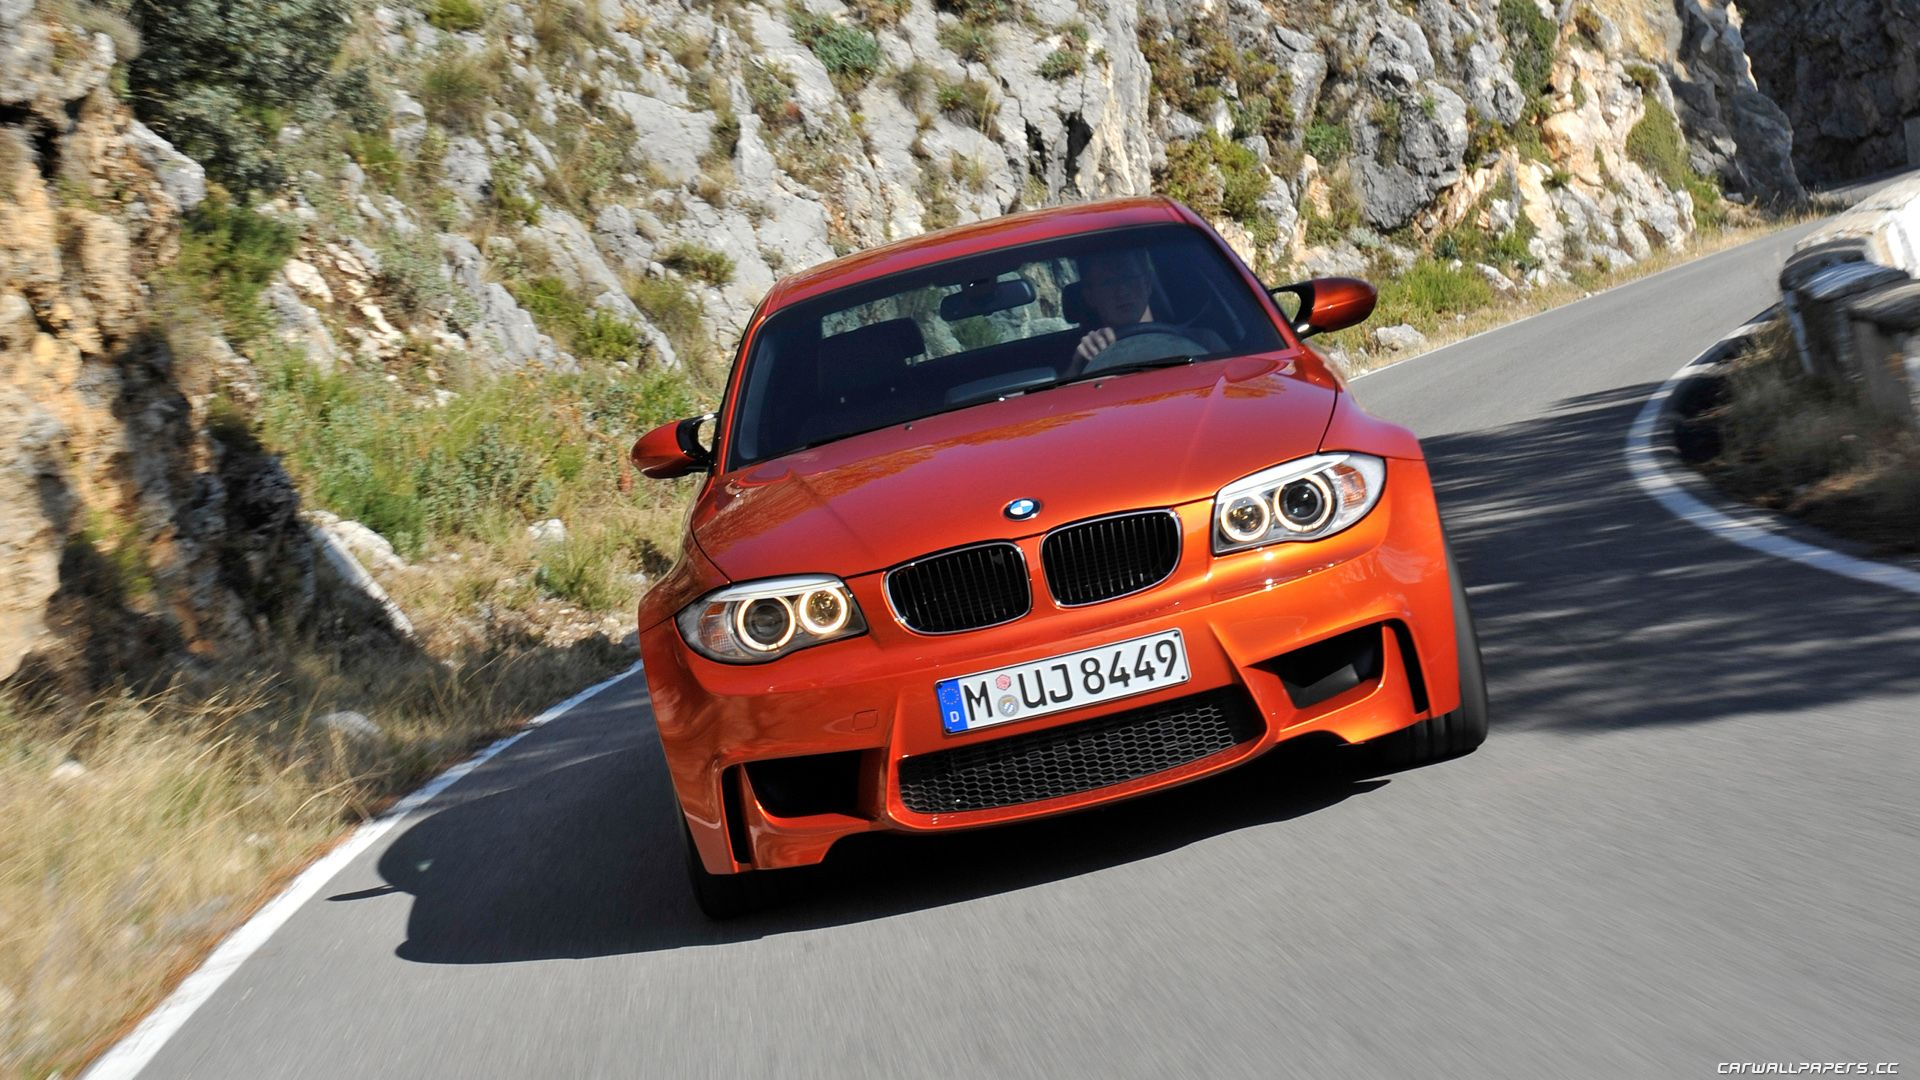 Bmw 1 series m check out these bimmers http